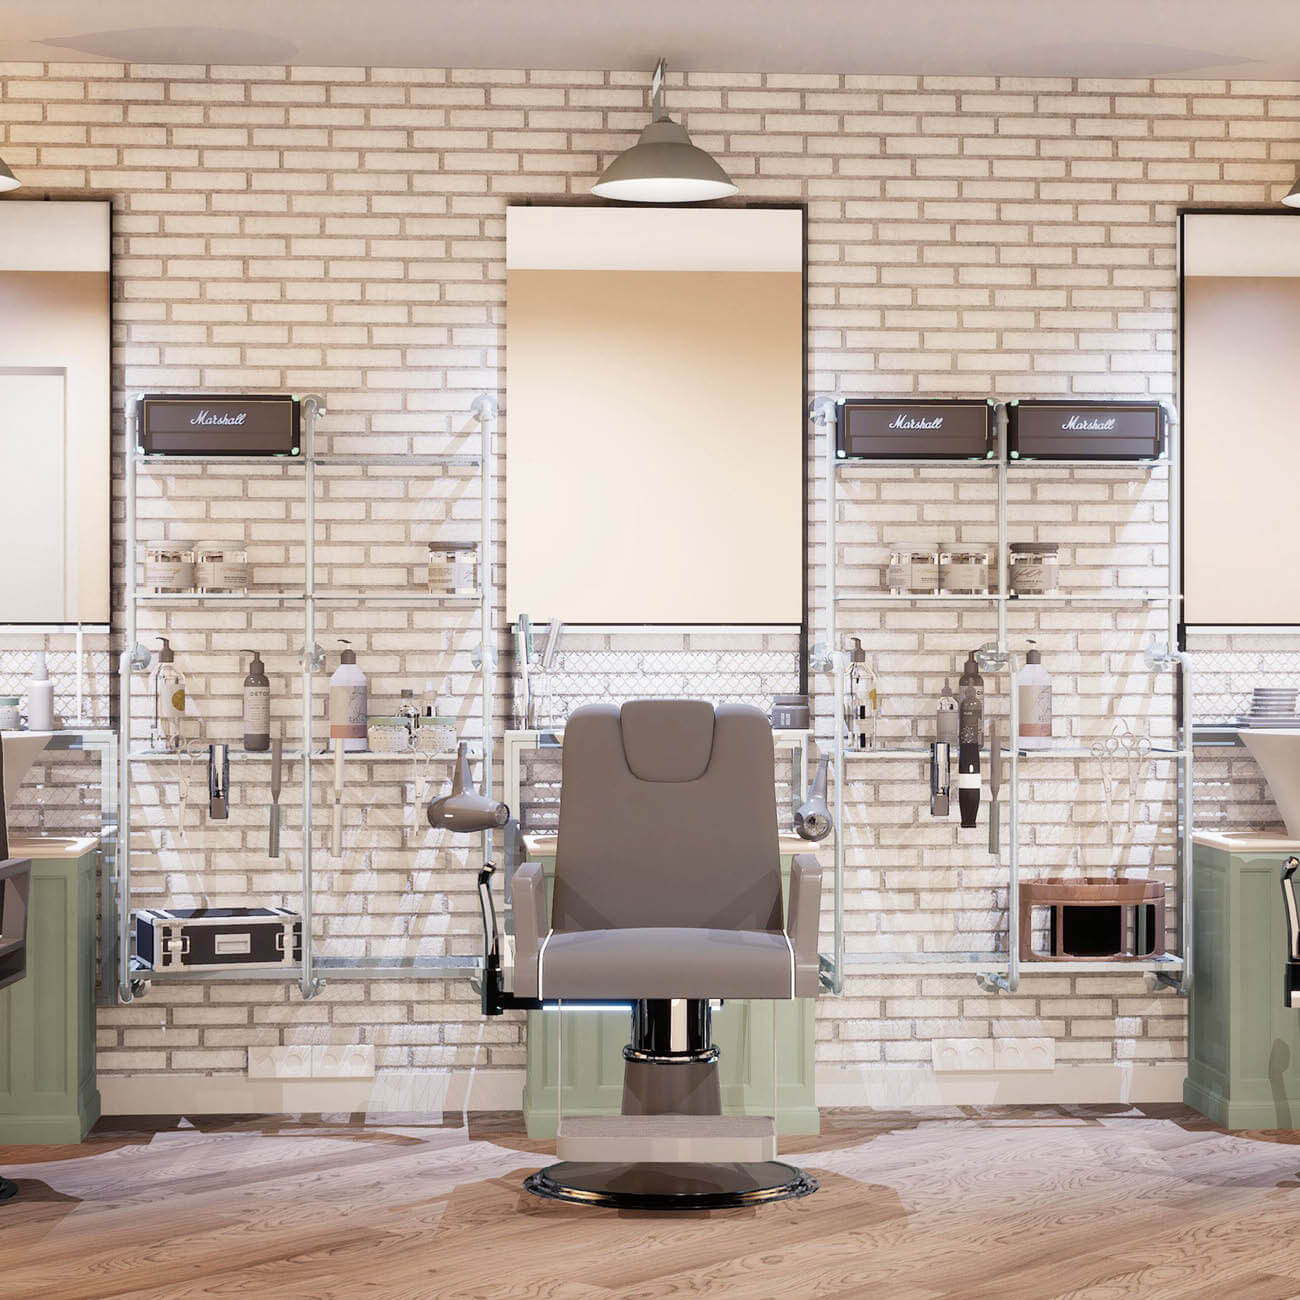 3D rendering of salon chairs